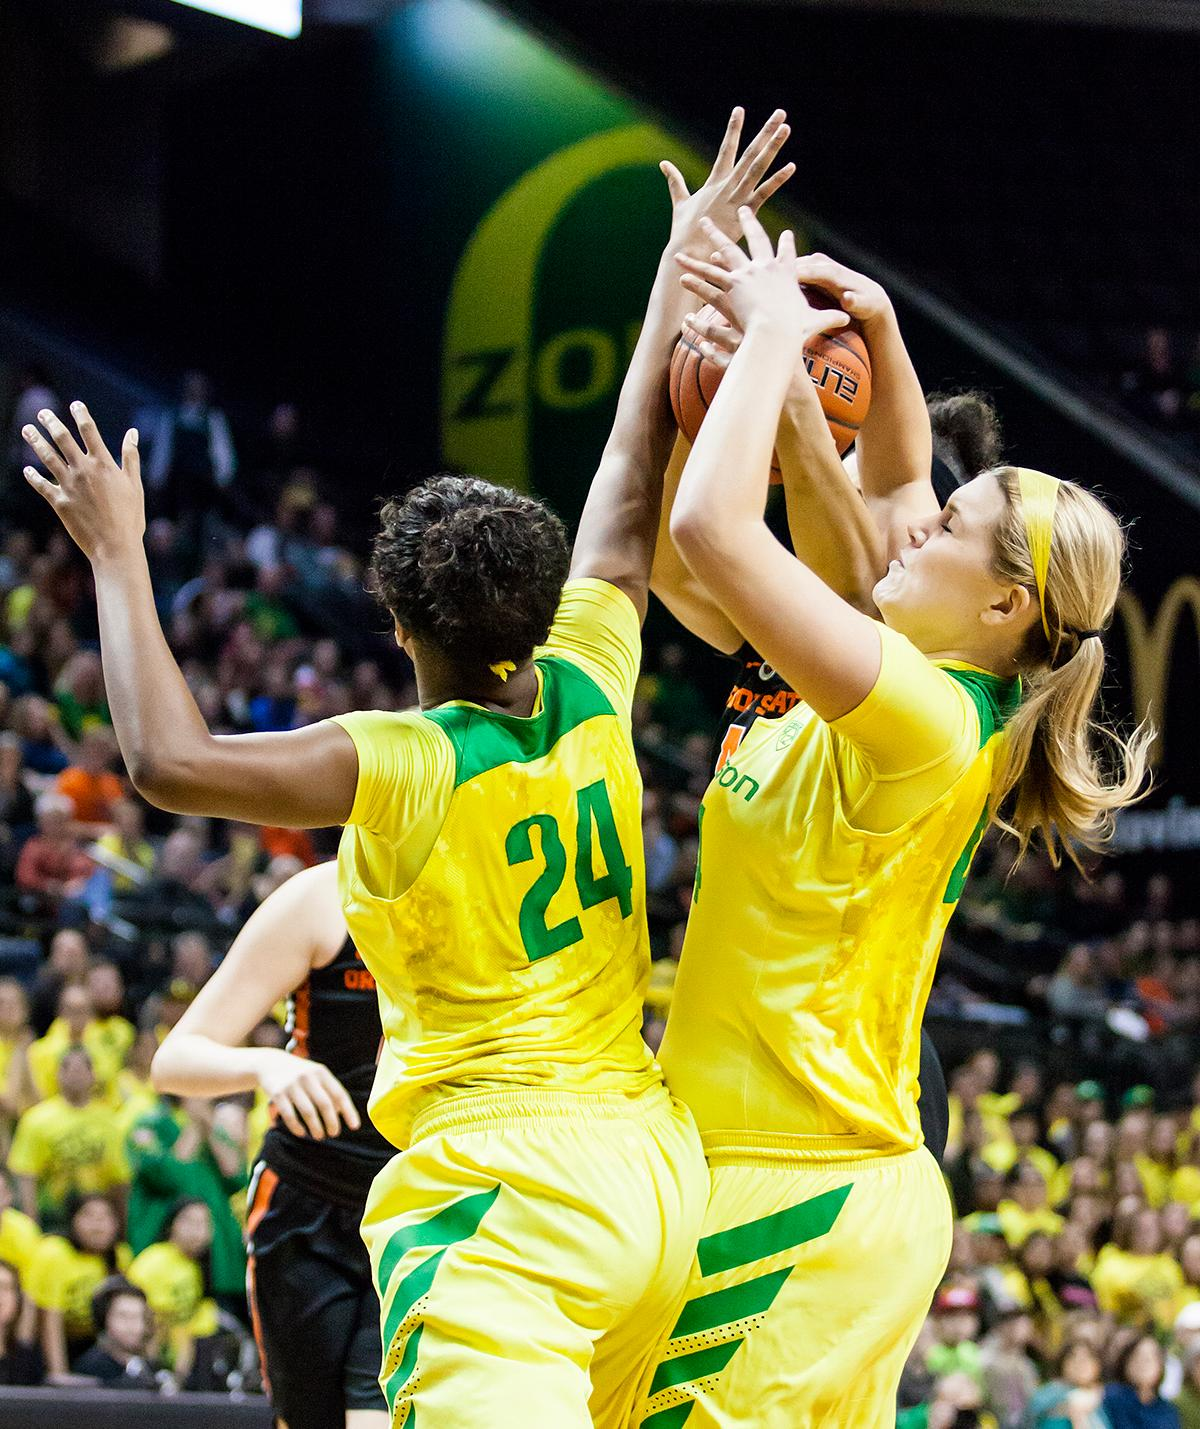 Oregon forwards Mallory McGwire (#44) and Ruthy Hebard (#24) leap into the air to catch a rebound. Hebard lead the Ducks with 11 rebounds. The Oregon Ducks lost 40 to 43 against the Oregon State Beavers after a tightly matched 4th quarter. Photo by Ben Lonergan, Oregon News Lab